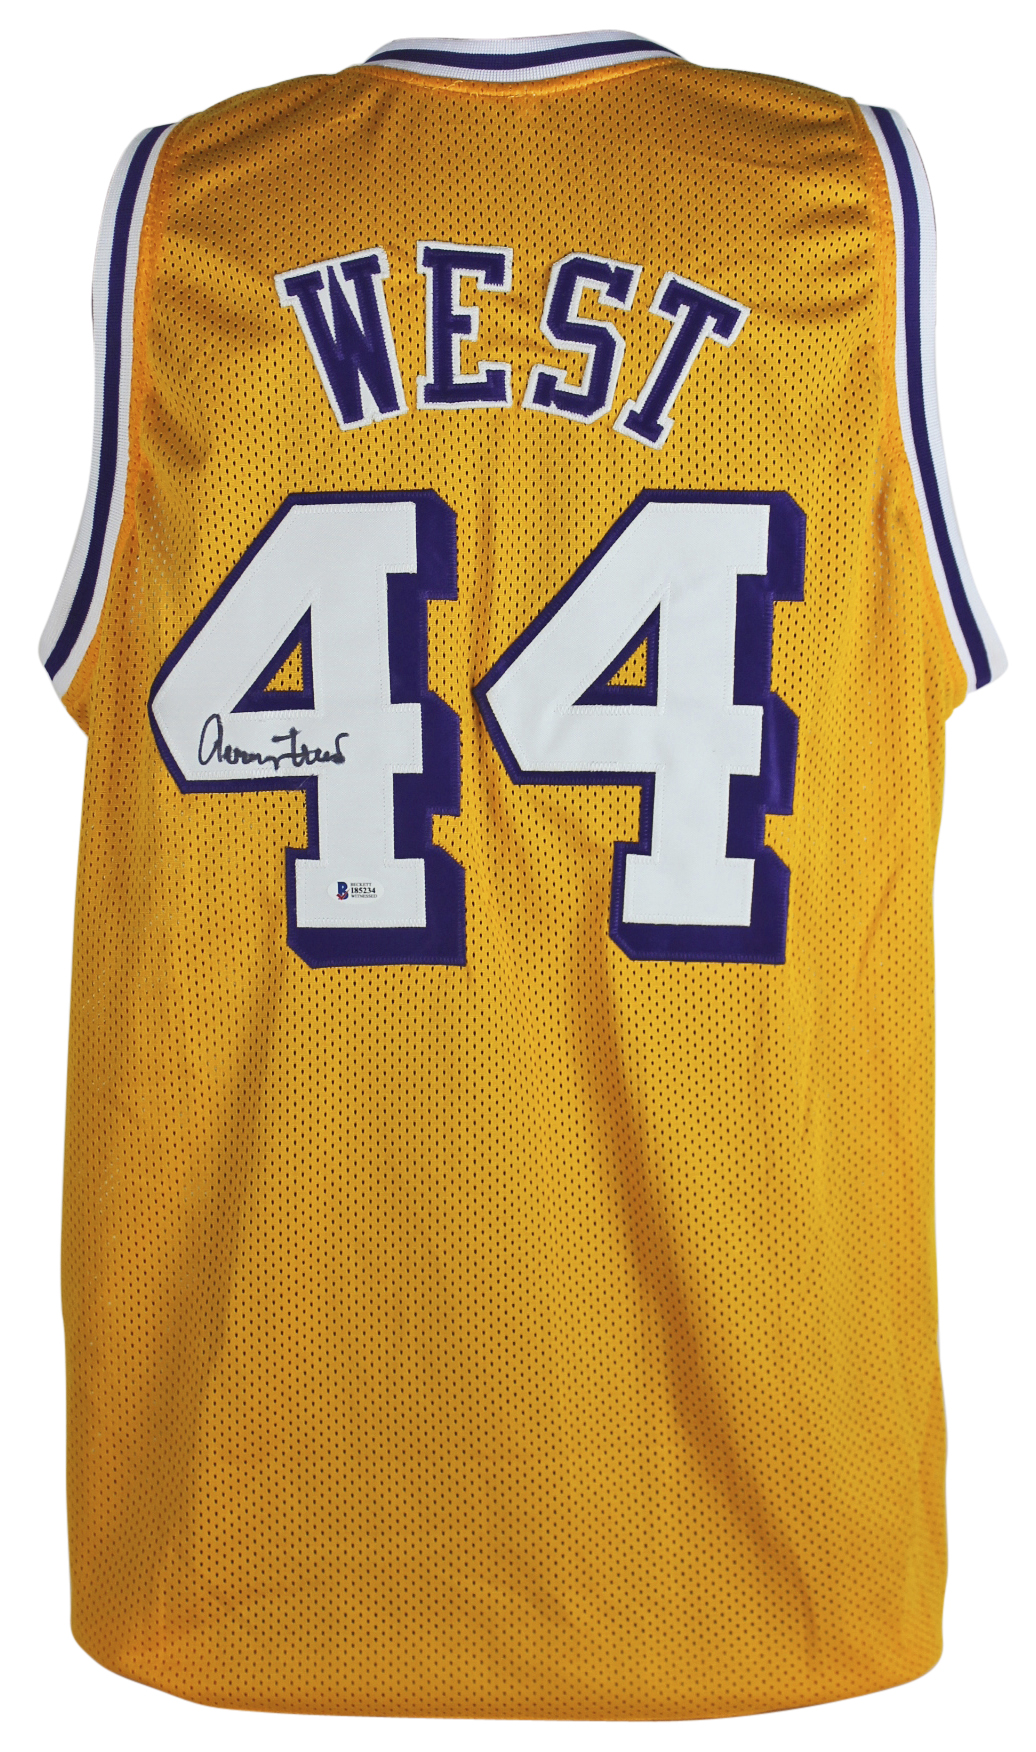 44229ce79 Lakers Jerry West Authentic Signed Yellow Mesh Jersey Autographed ...